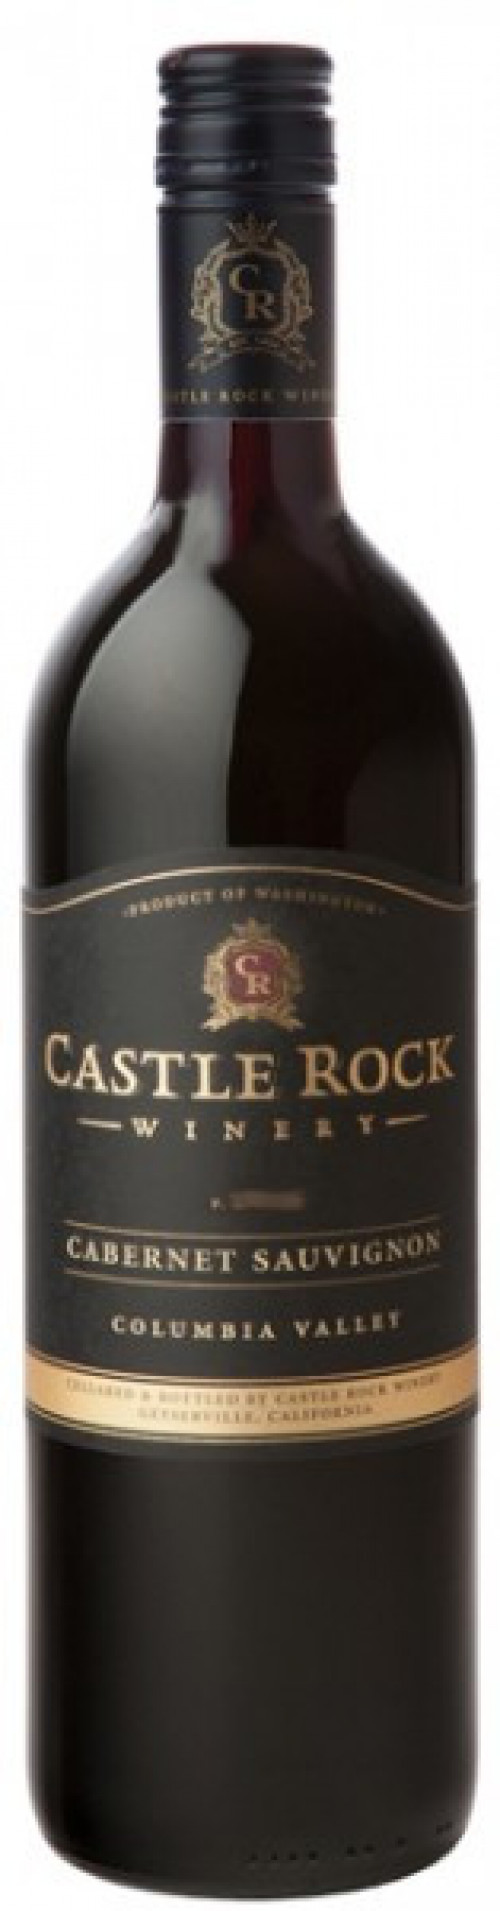 Castle Rock Cabernet Sauvignon Columbia Valley 750ml